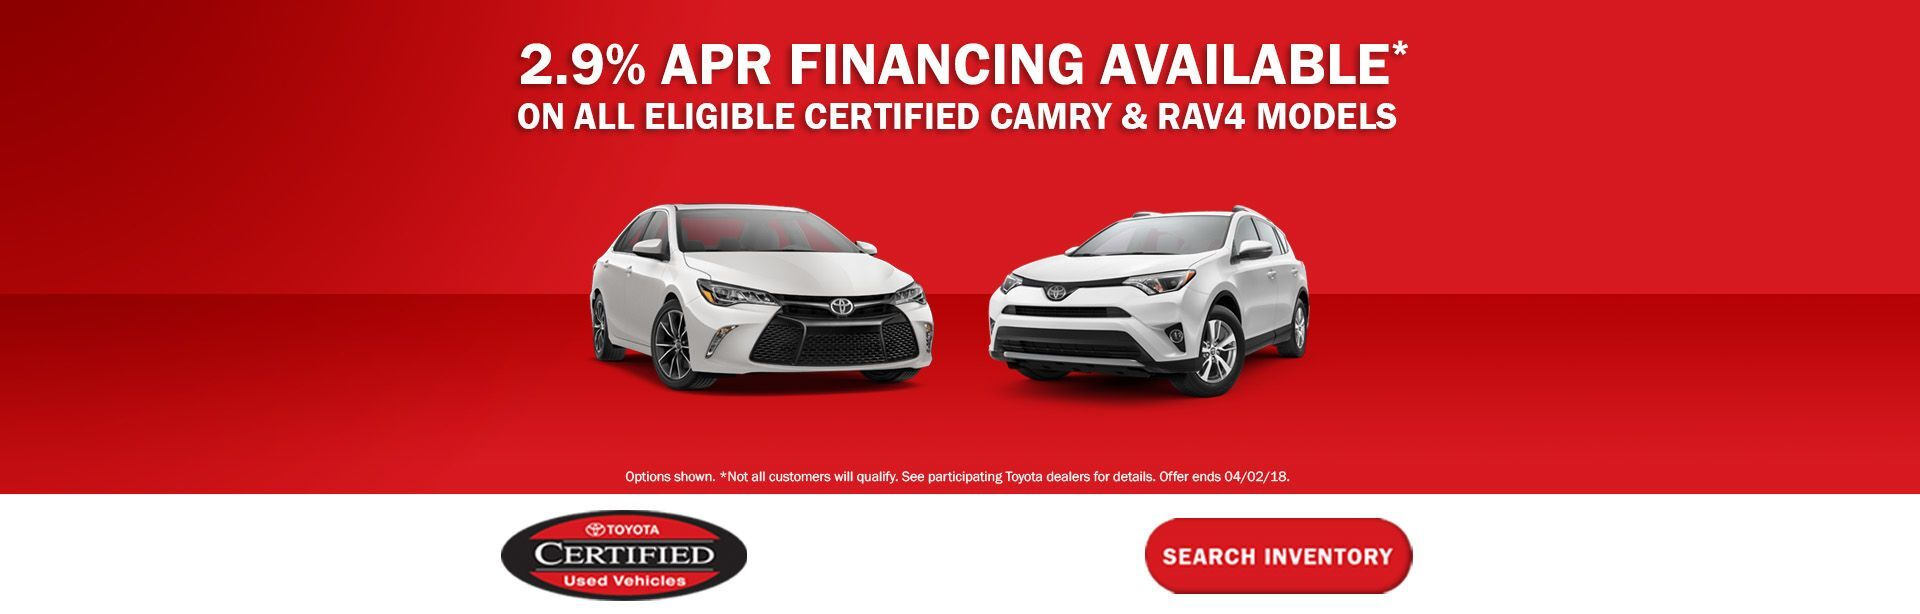 Toyota Certified Used Cars at Novato Toyota